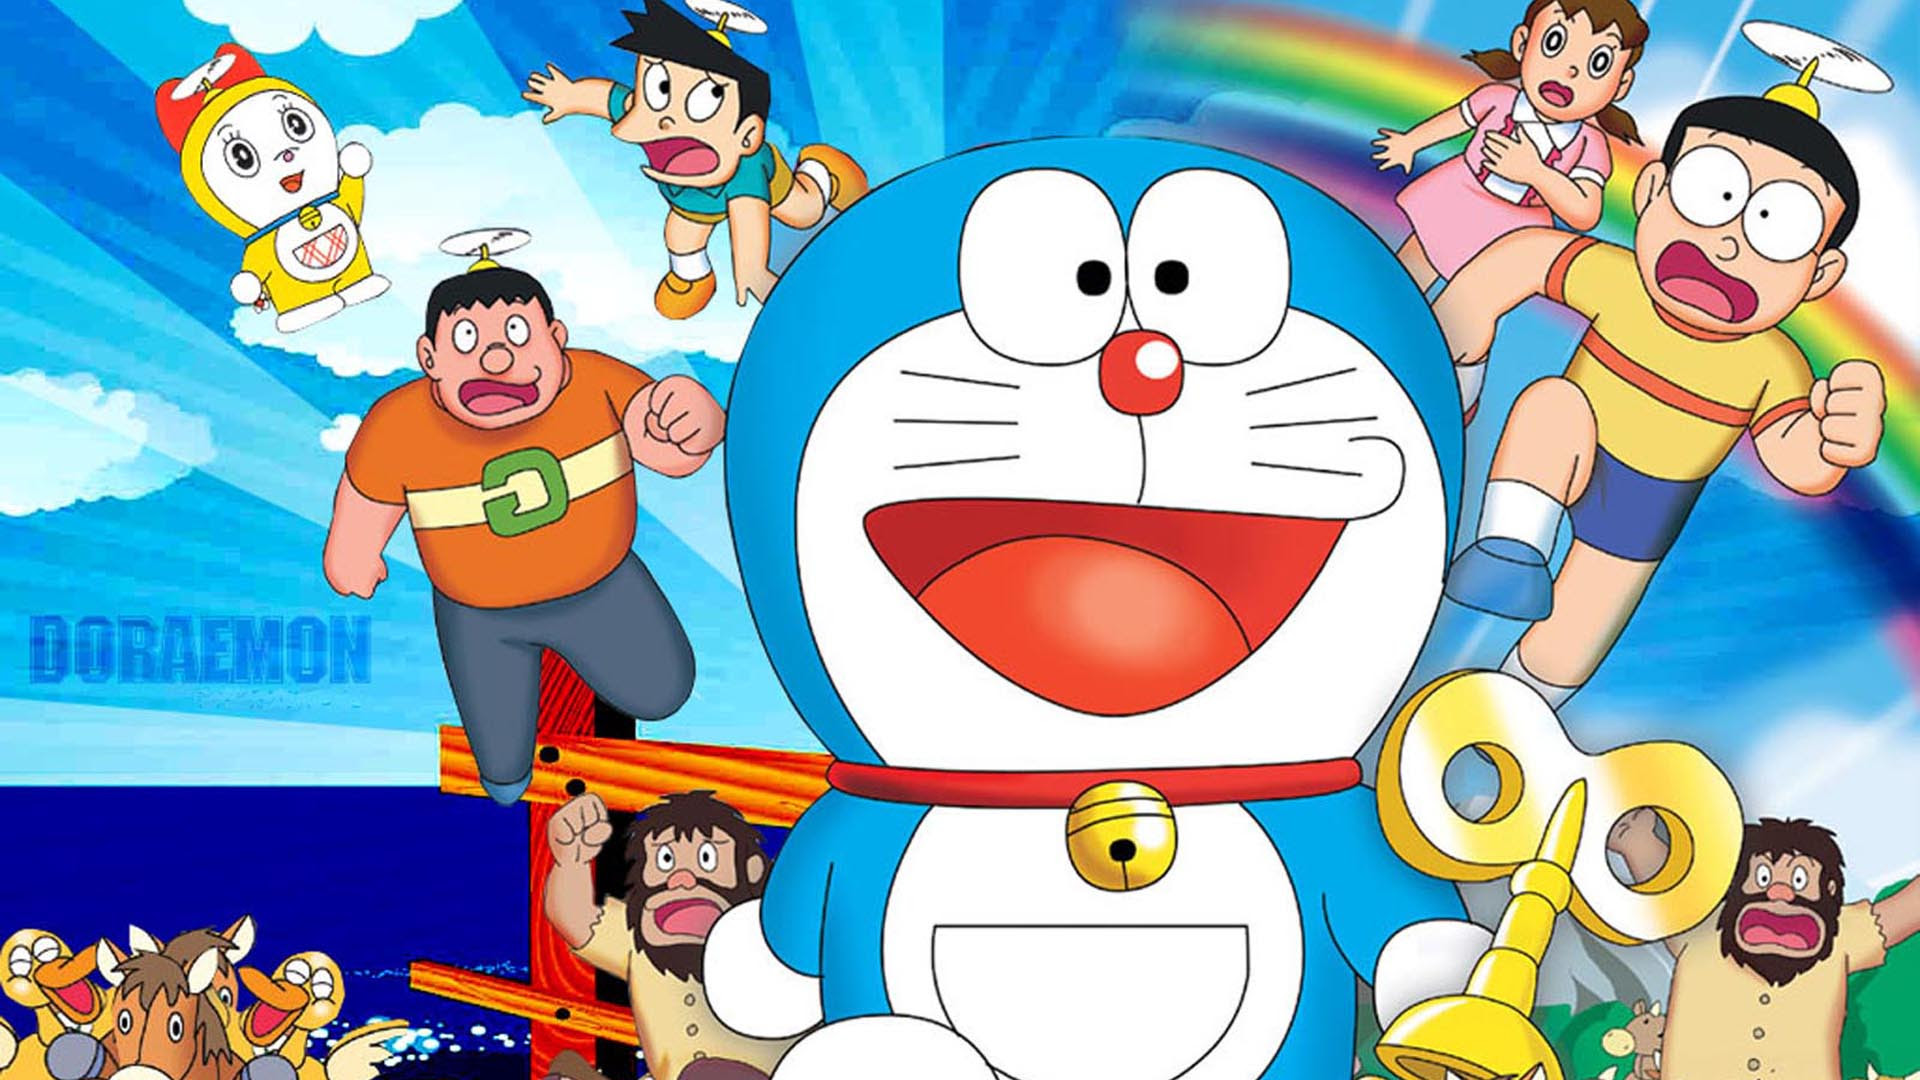 Doraemon 3D Cartoon HD for Android Wallpaper: Desktop HD Wallpaper  Download Free Image